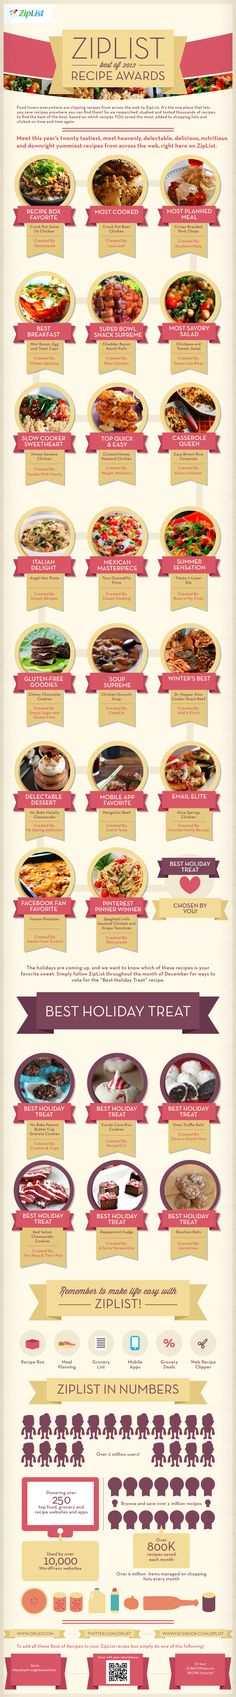 Newly Released – ZipList's Best of 2012 Recipe Awards Infographic. Meet this year's twenty tastiest, most heavenly, delectable, delicious, nutritious, and downright yummiest recipes from across the web, right here on ZipList.